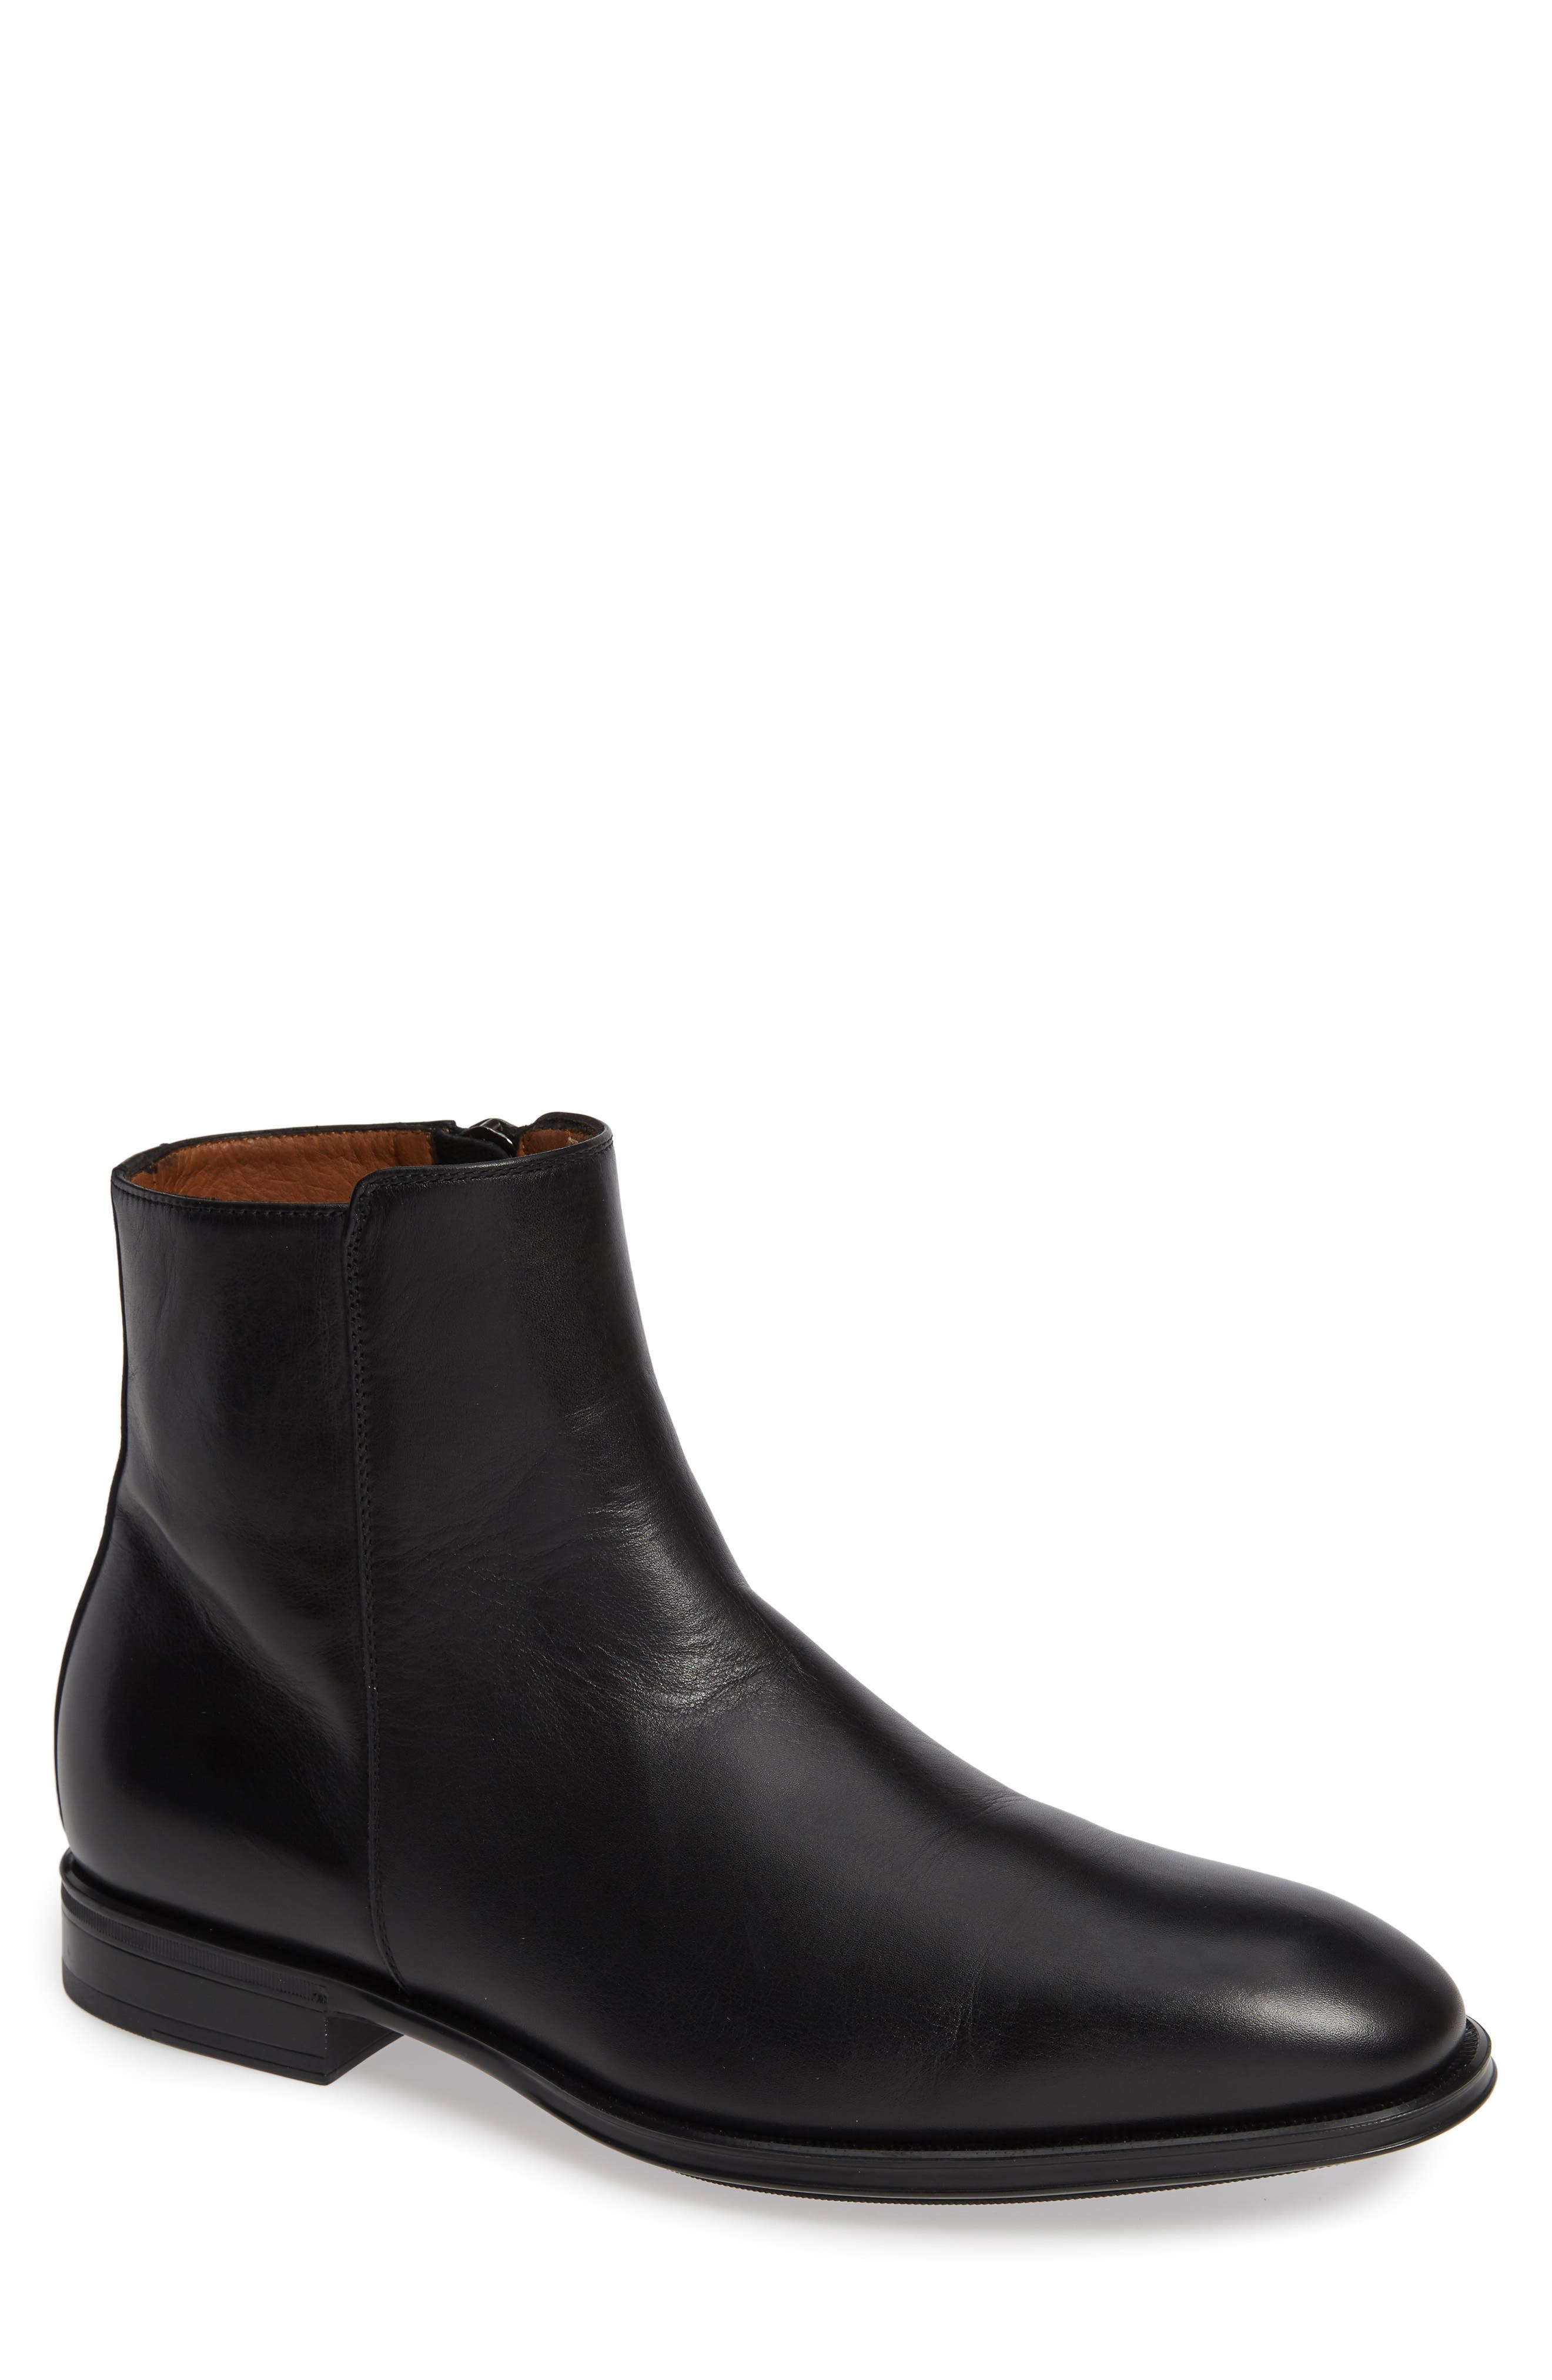 Aquatalia Daniel Water Resistant Zip Boot, Black